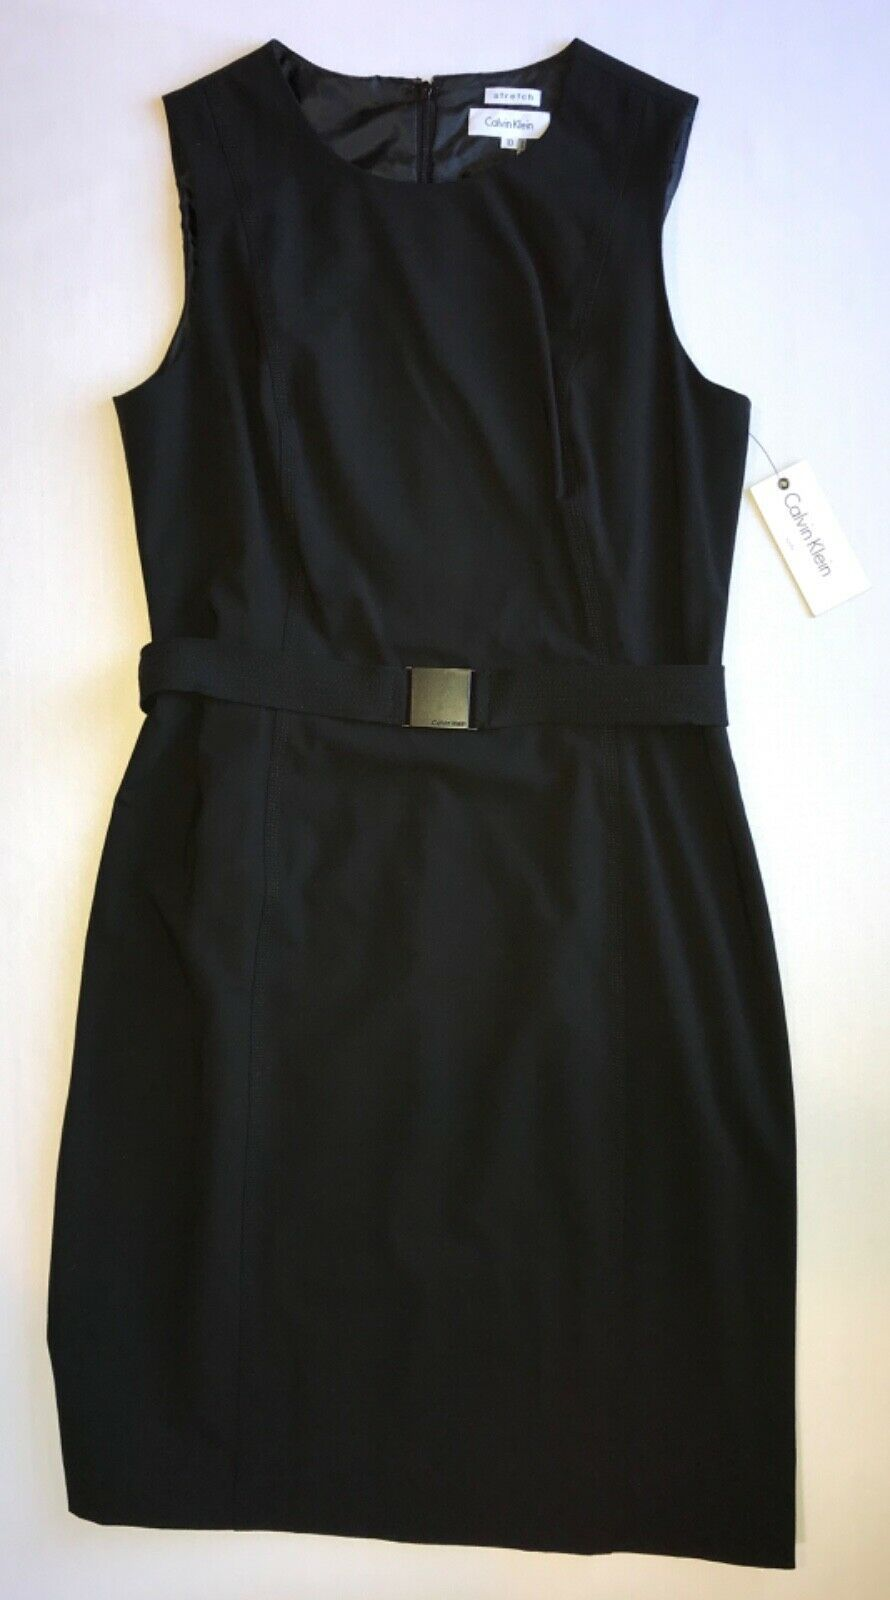 Primary image for Scoop Neck Front Sleeveless Shift Dress w/Belted Waist in sz 10 by Calvin Klein